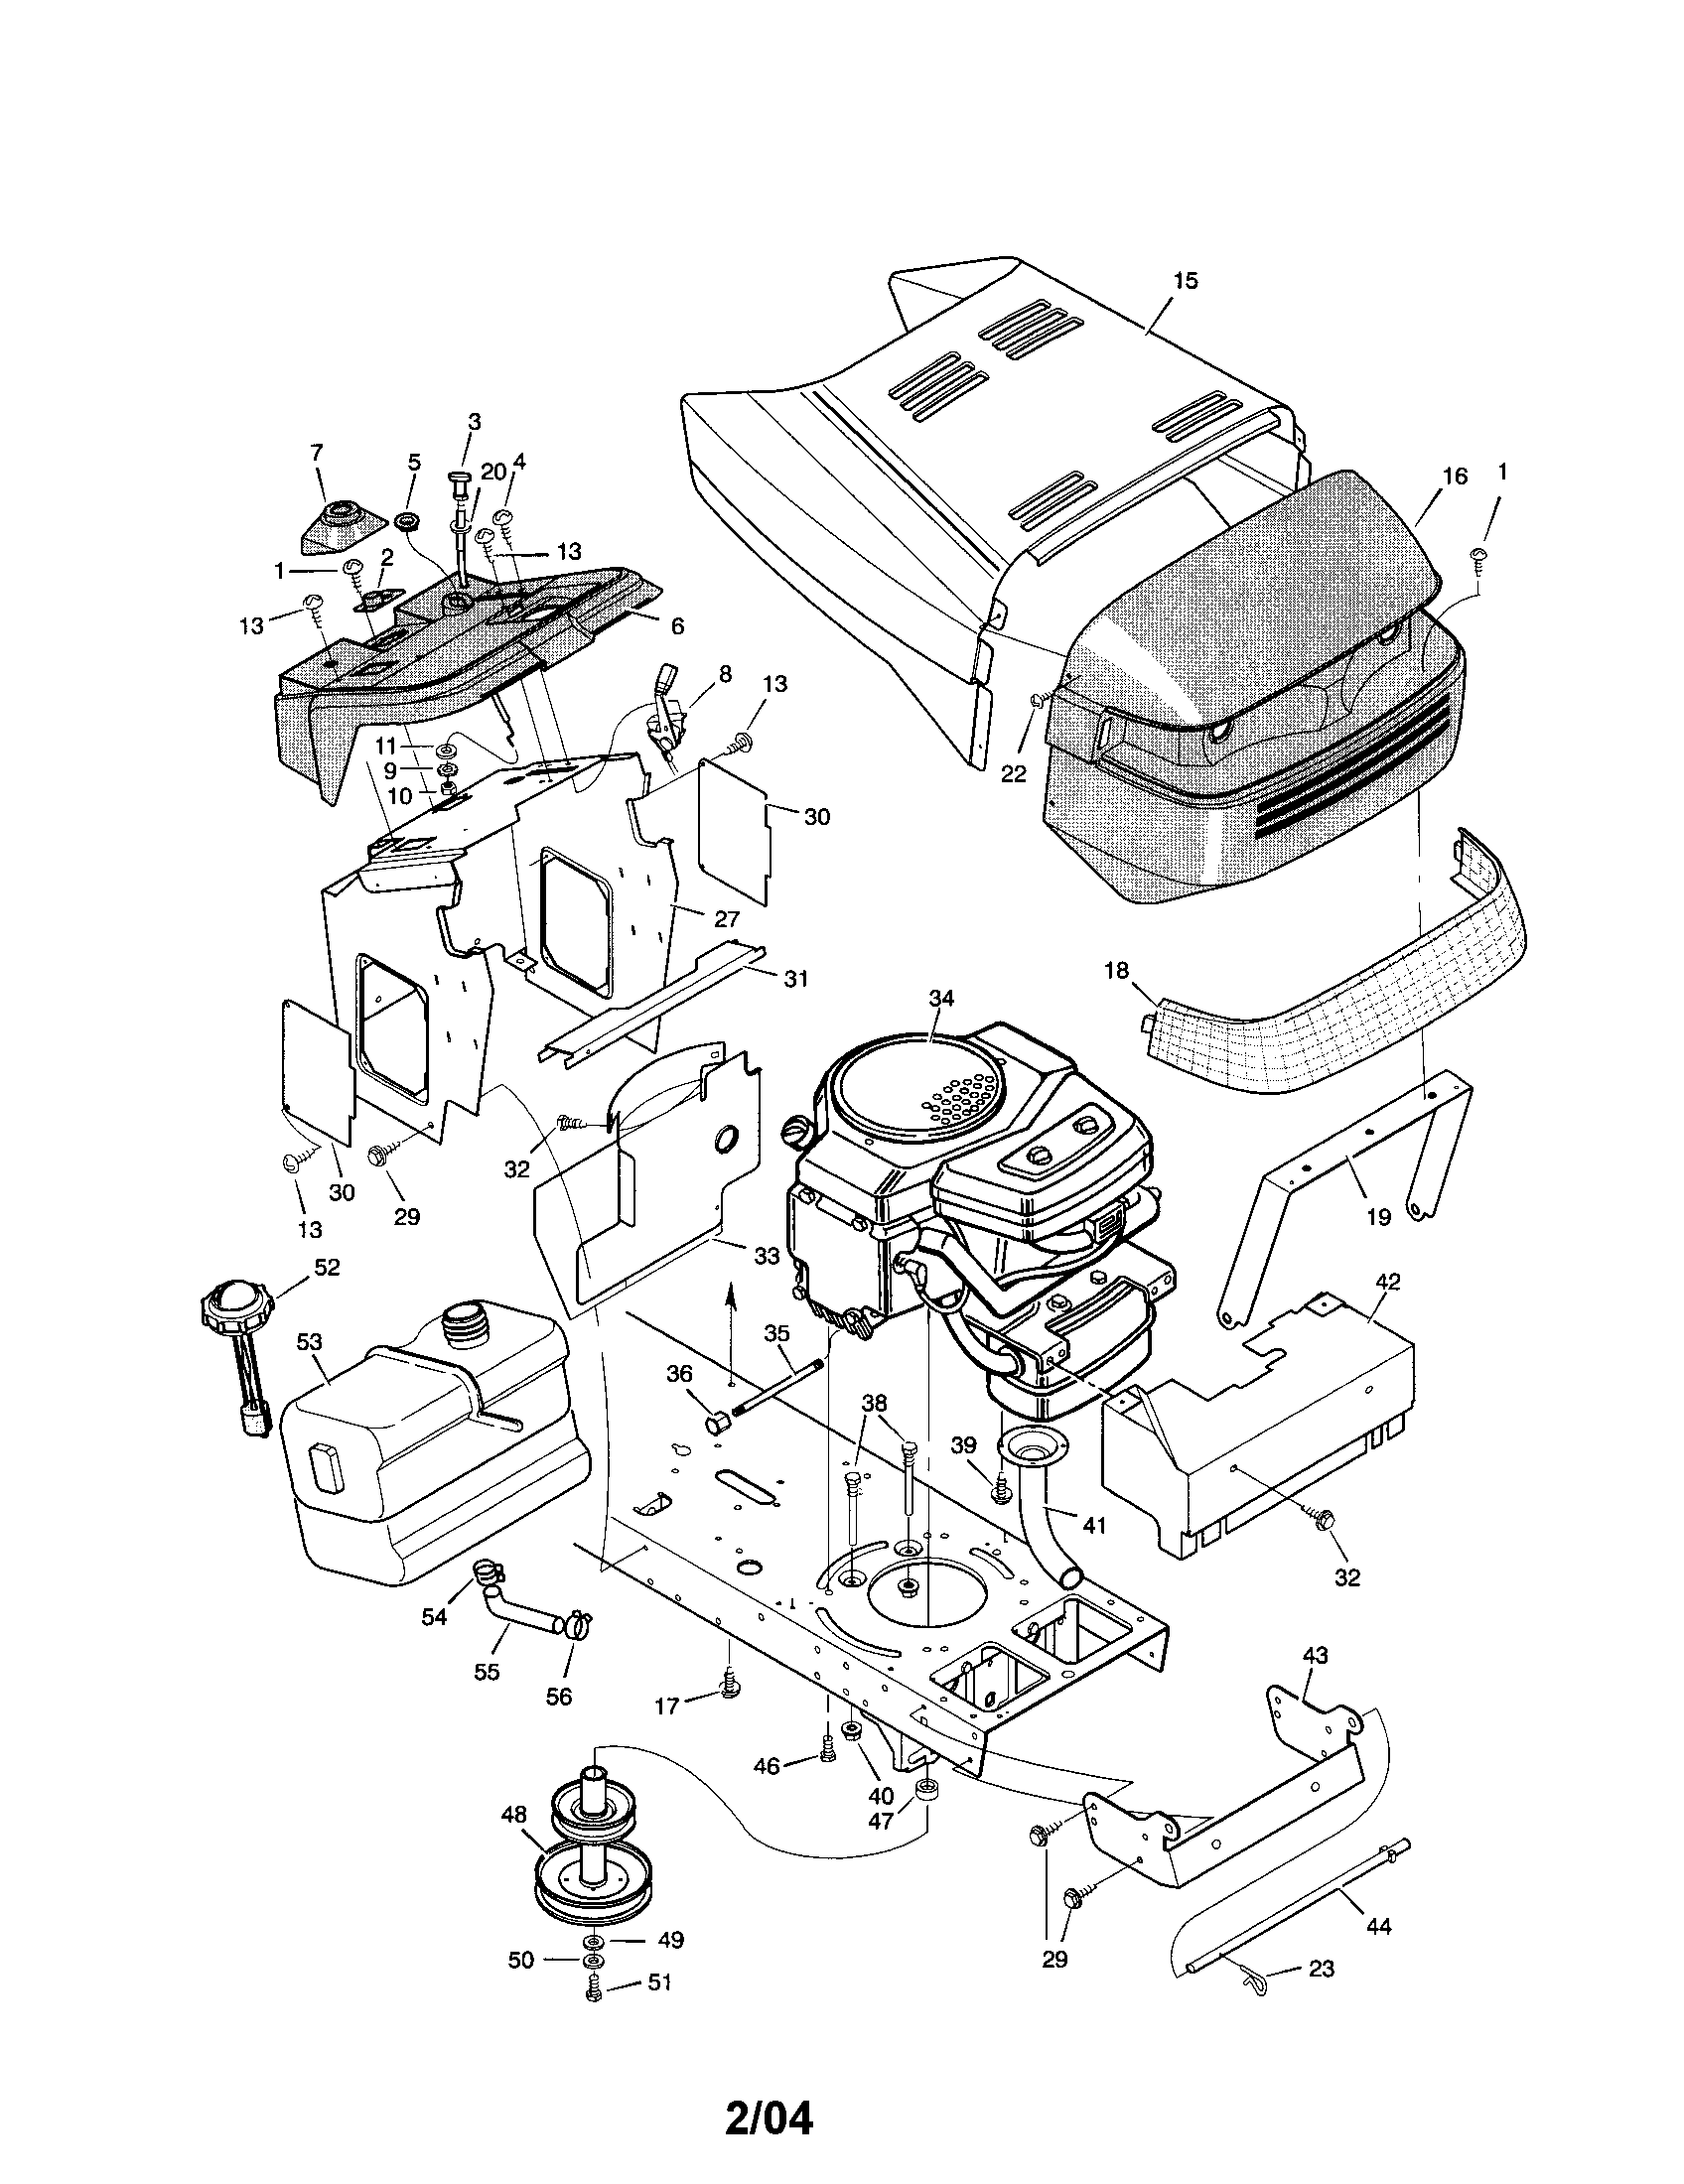 hight resolution of murray lawn mower engine diagram wiring diagram database murray lawn mower engine parts murray lawn mower engine diagram